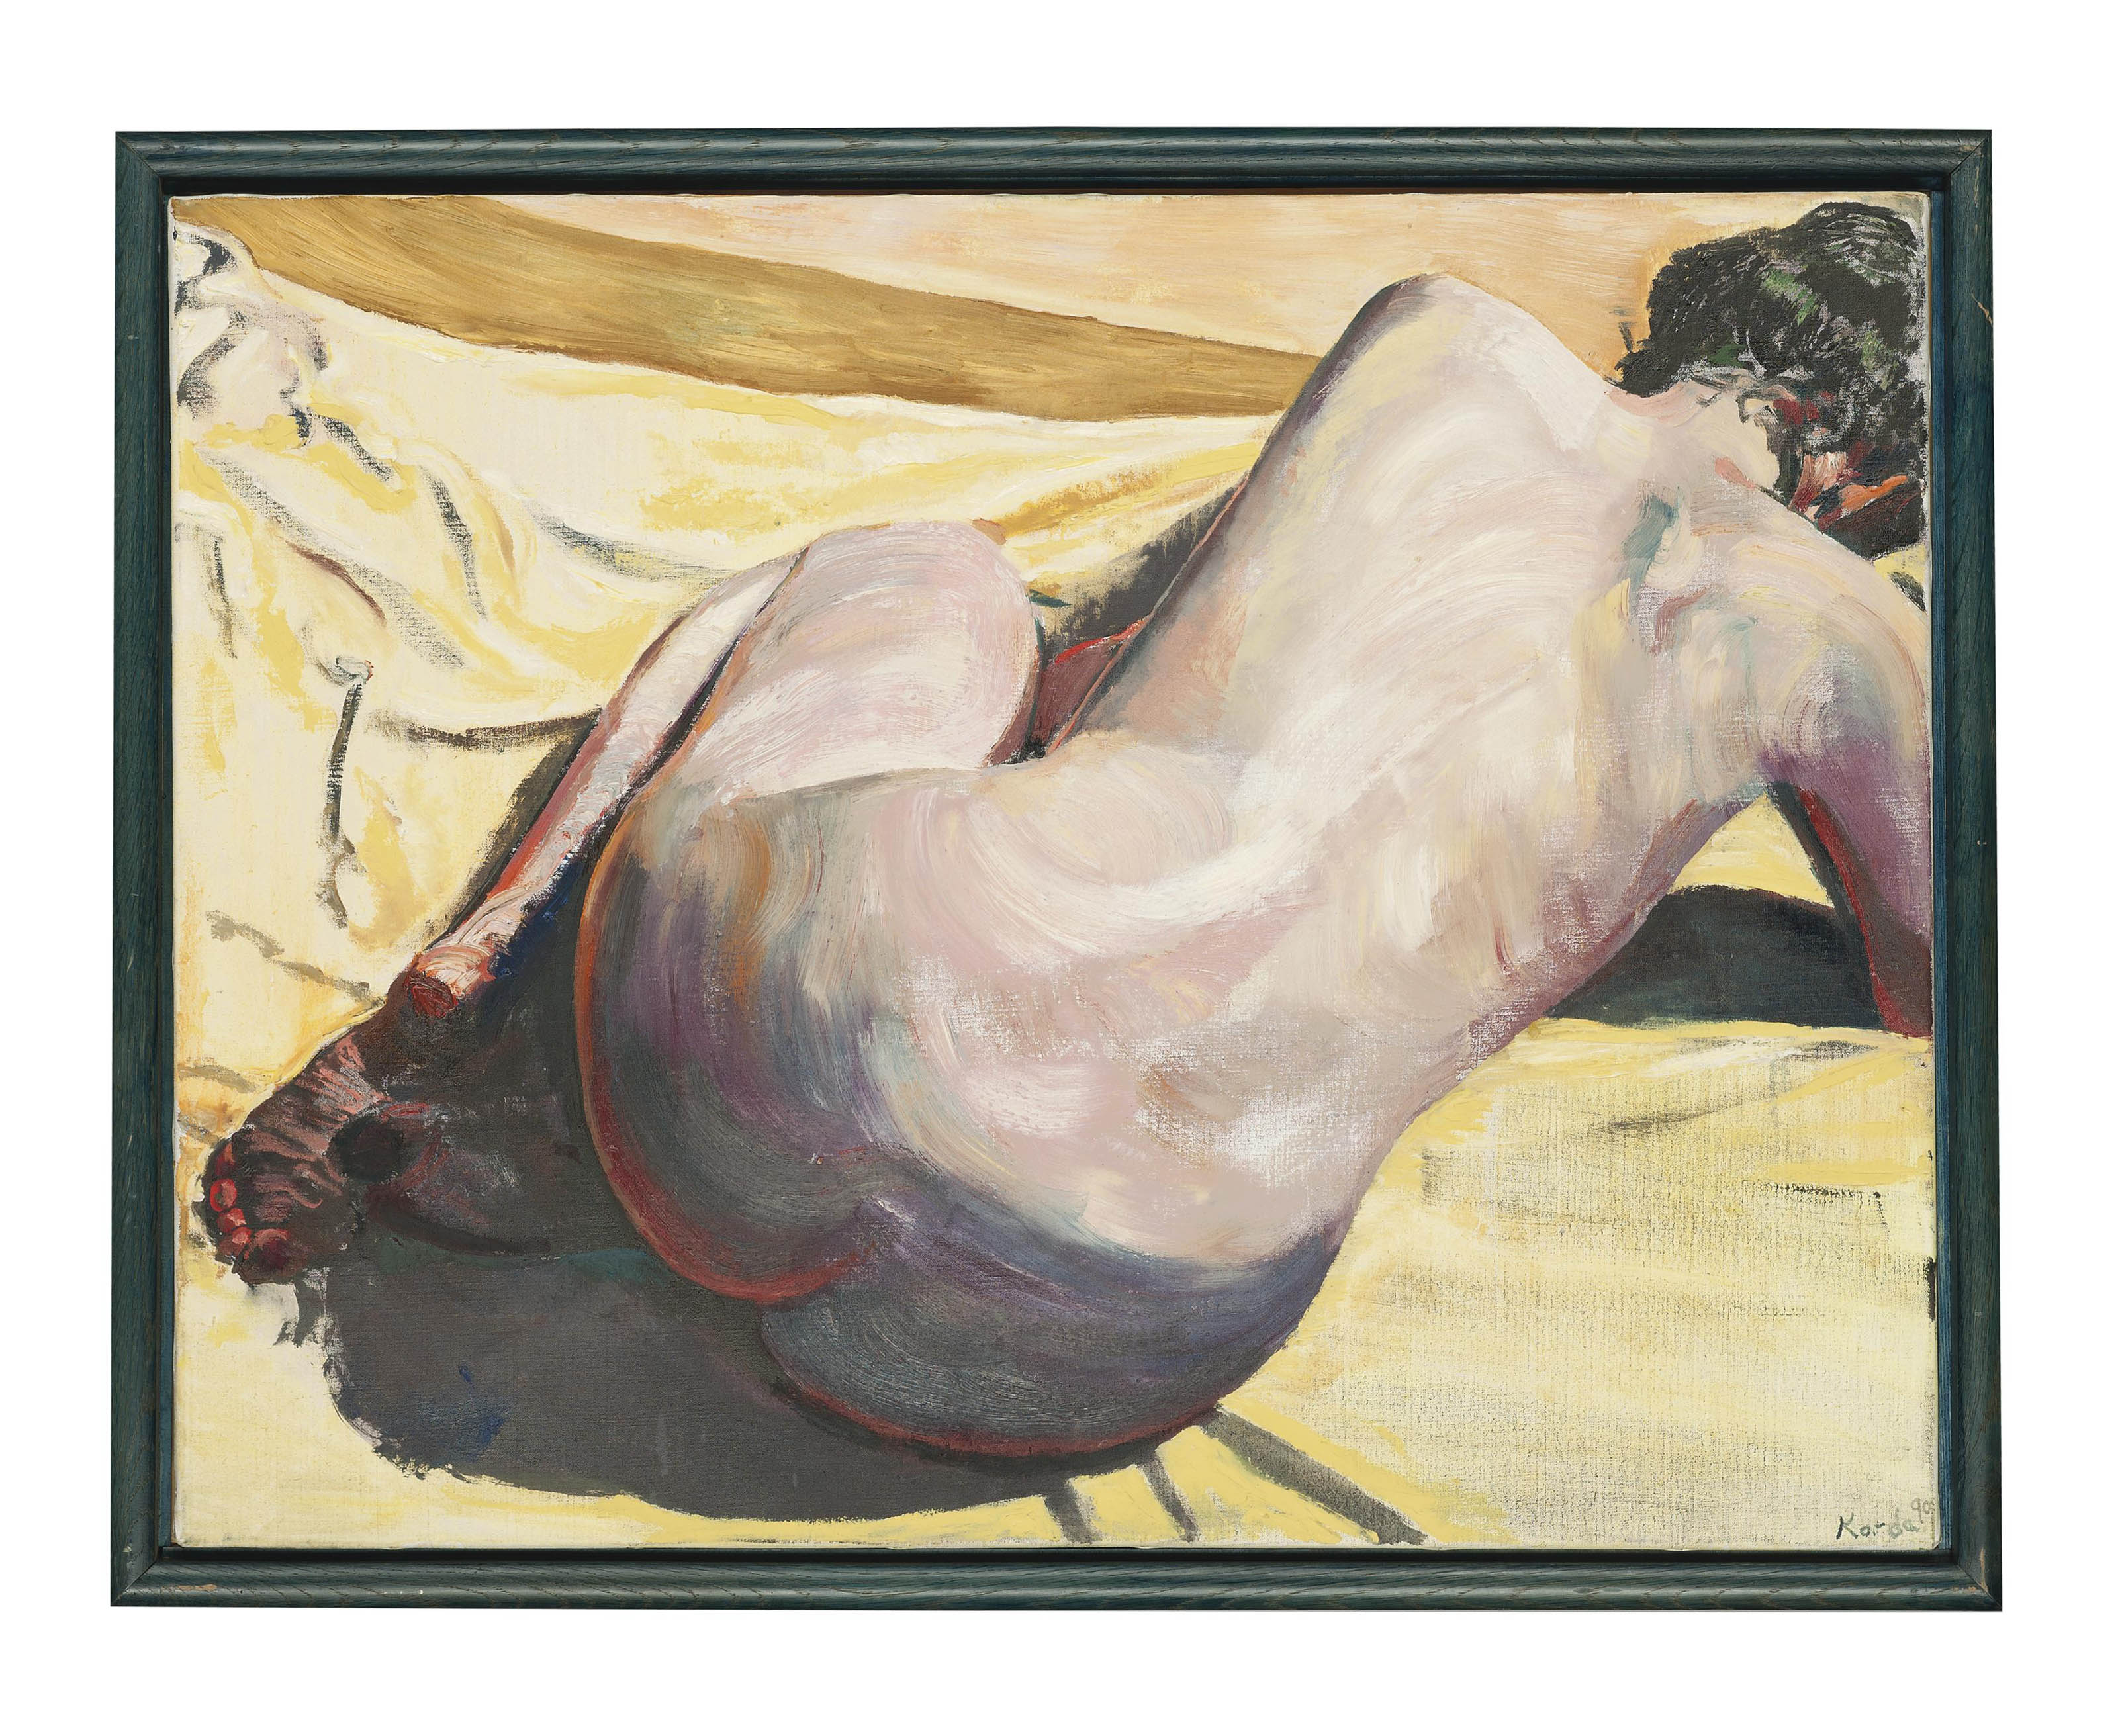 Nude on a yellow sheet